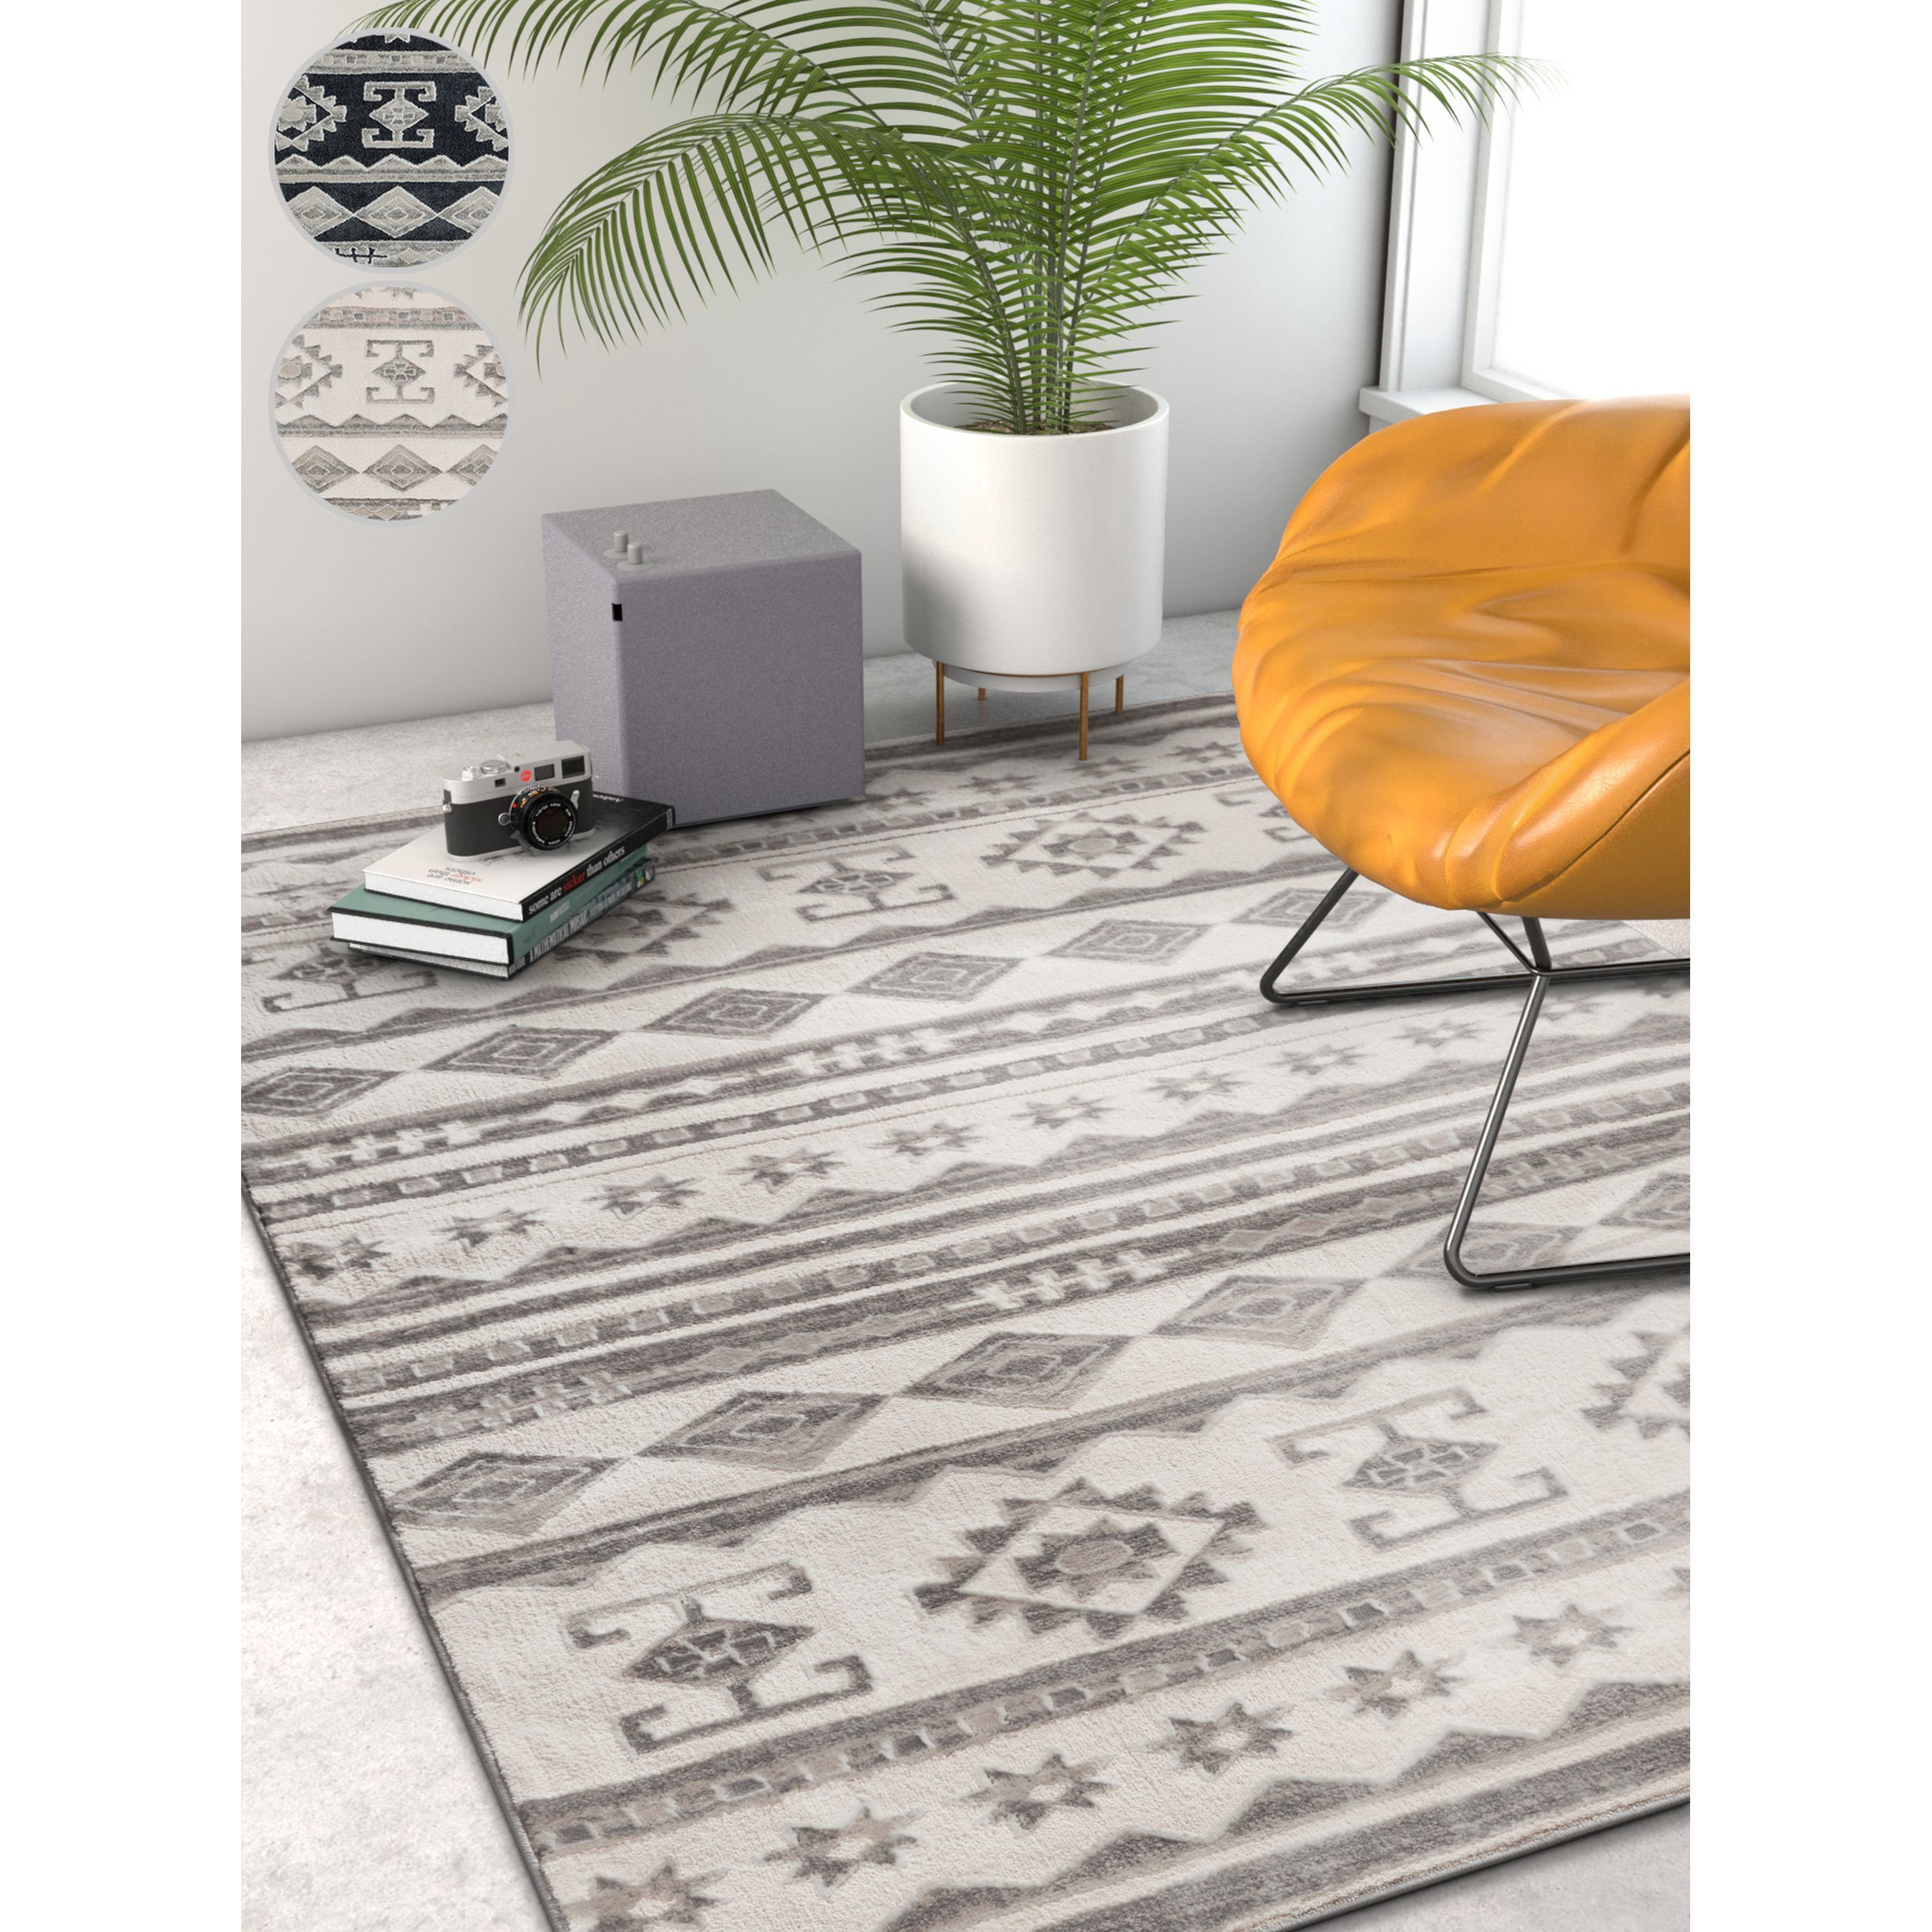 Well Woven Modern Tribal Stripe Area Rug 7 10 X 9 10 Dark Grey Gray In 2019 Modern Area Rugs Area Rugs Rugs